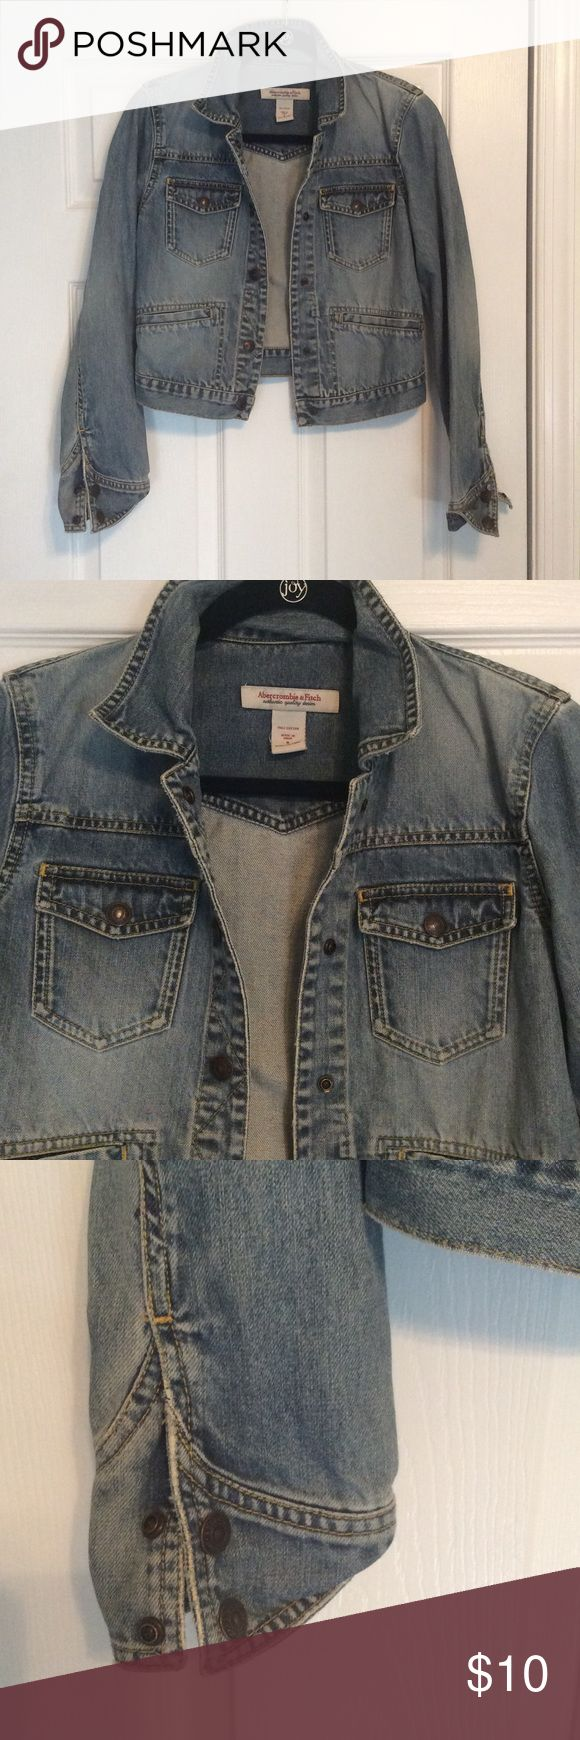 Abercrombie Jean Jacket Abercrombie and Fitch Jean Jacket. Great conduction. Abercrombie & Fitch Jackets & Coats Jean Jackets